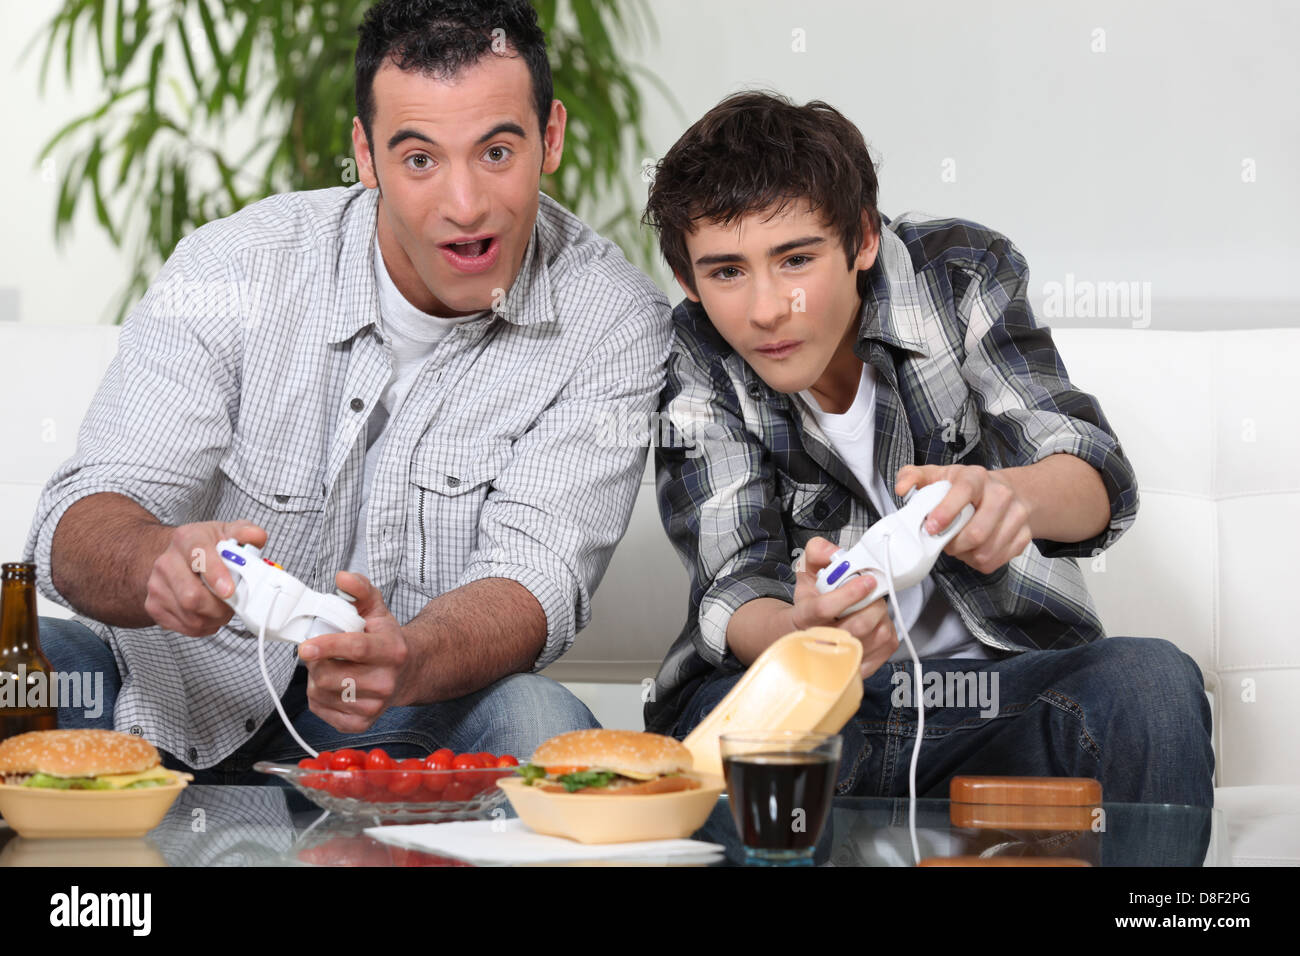 Father and son playing computer games and eating junk food - Stock Image